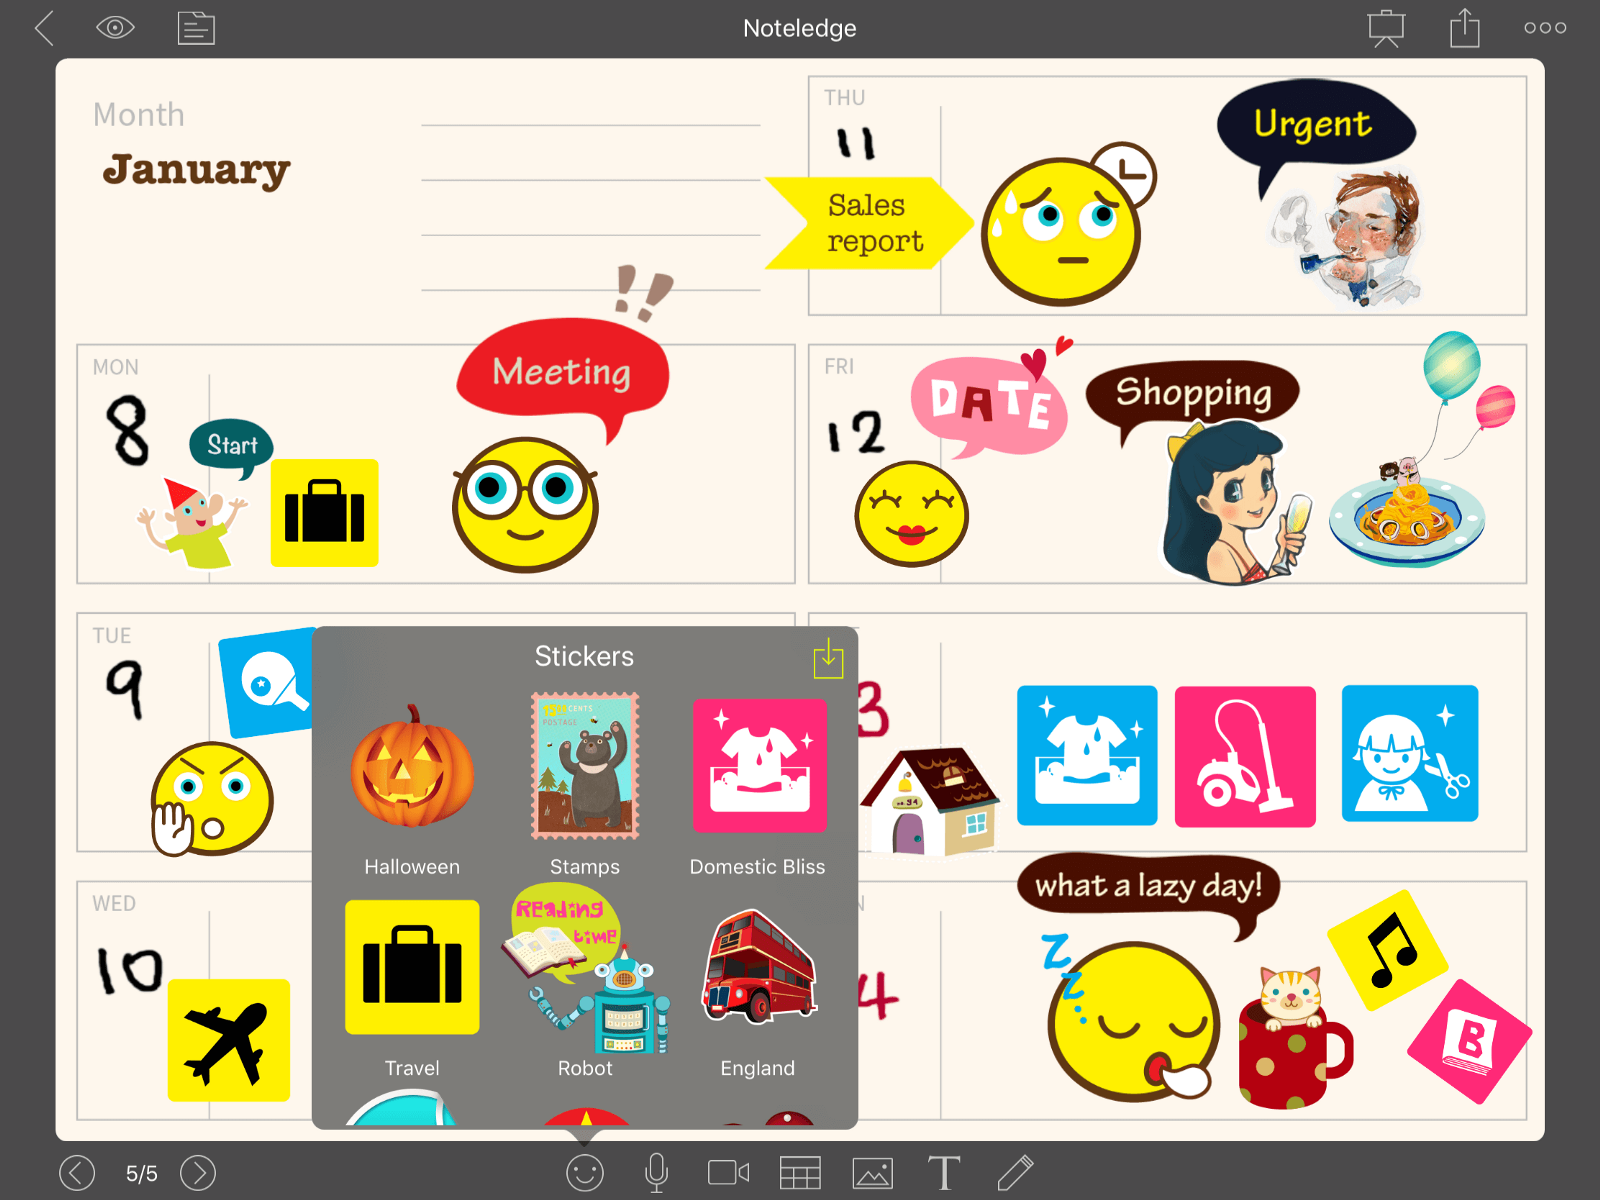 NoteLedge Sticker Planner